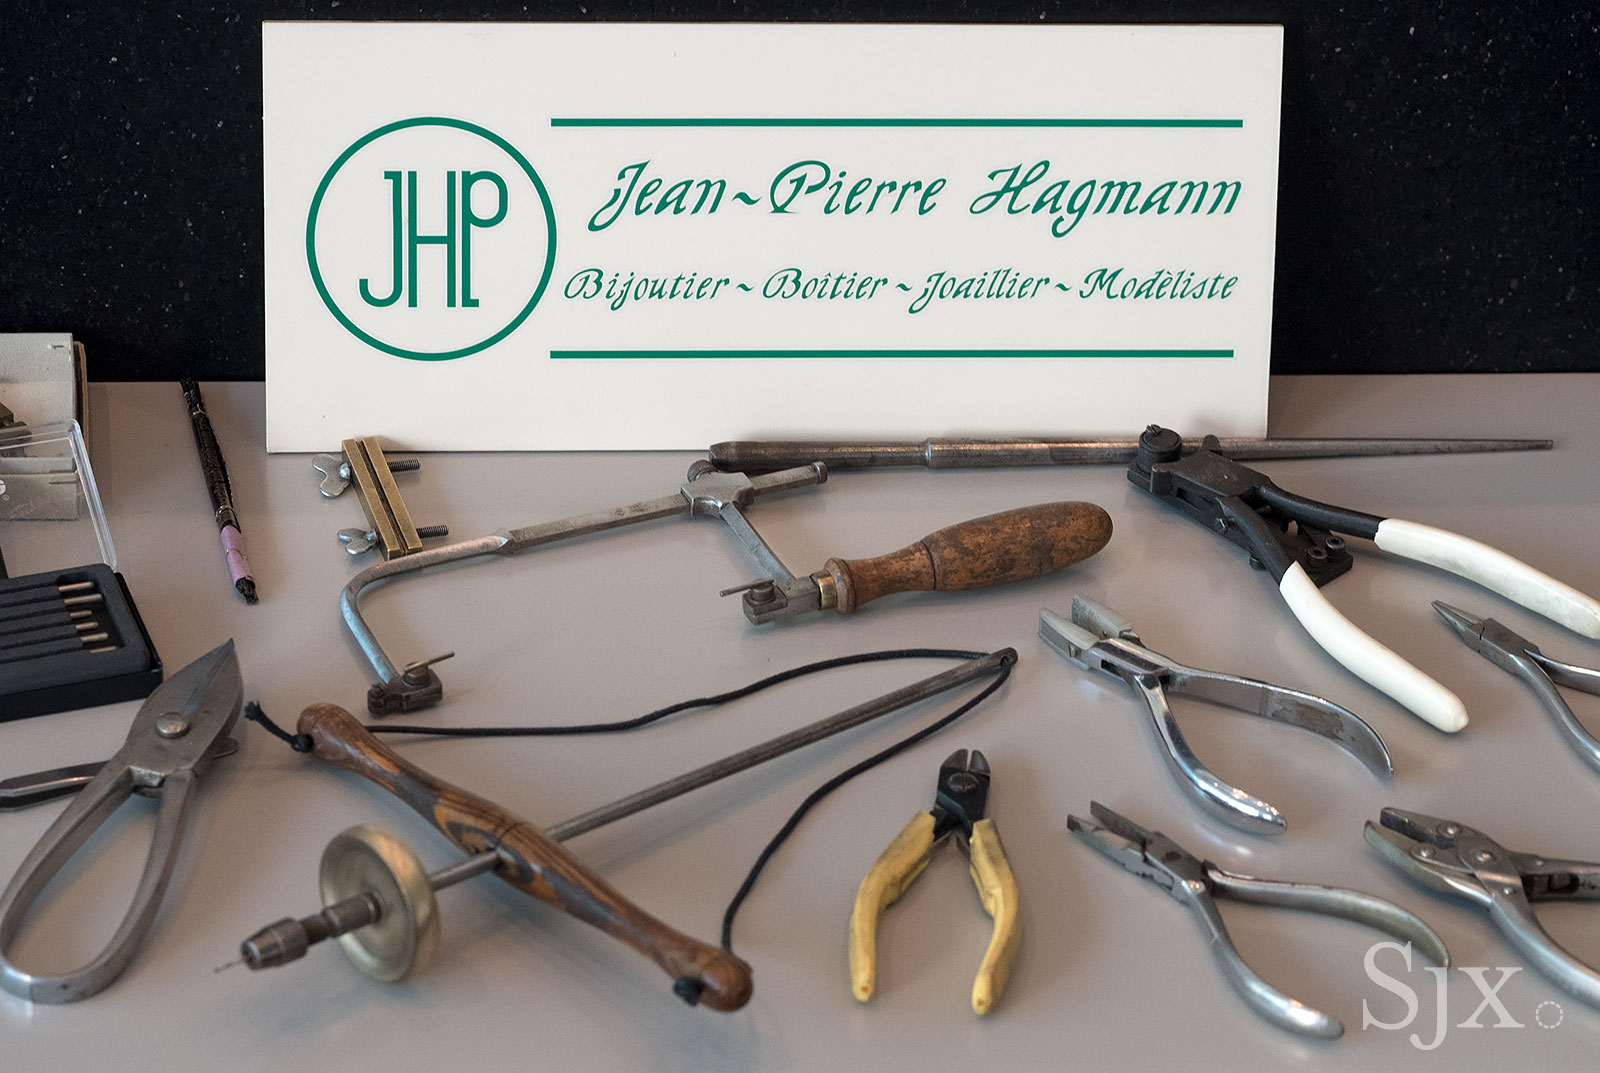 Jean-Pierre Hagmann interview 2016-7